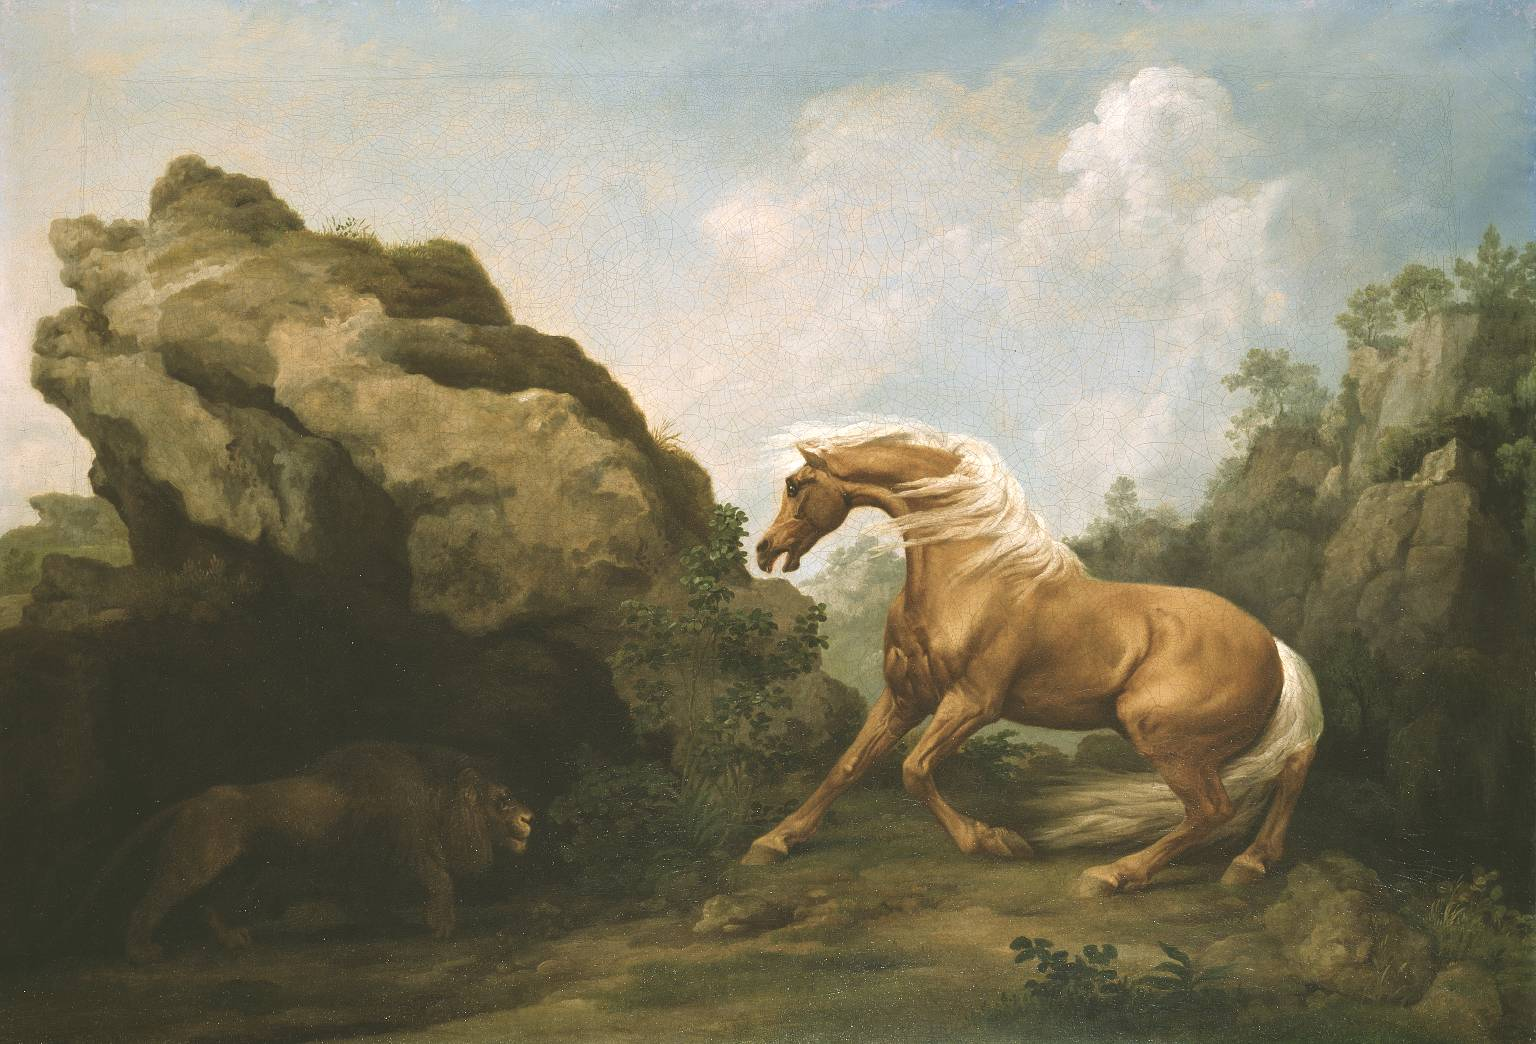 Horse Frightened by a Lion [George Stubbs] | Sartle - Rogue Art History